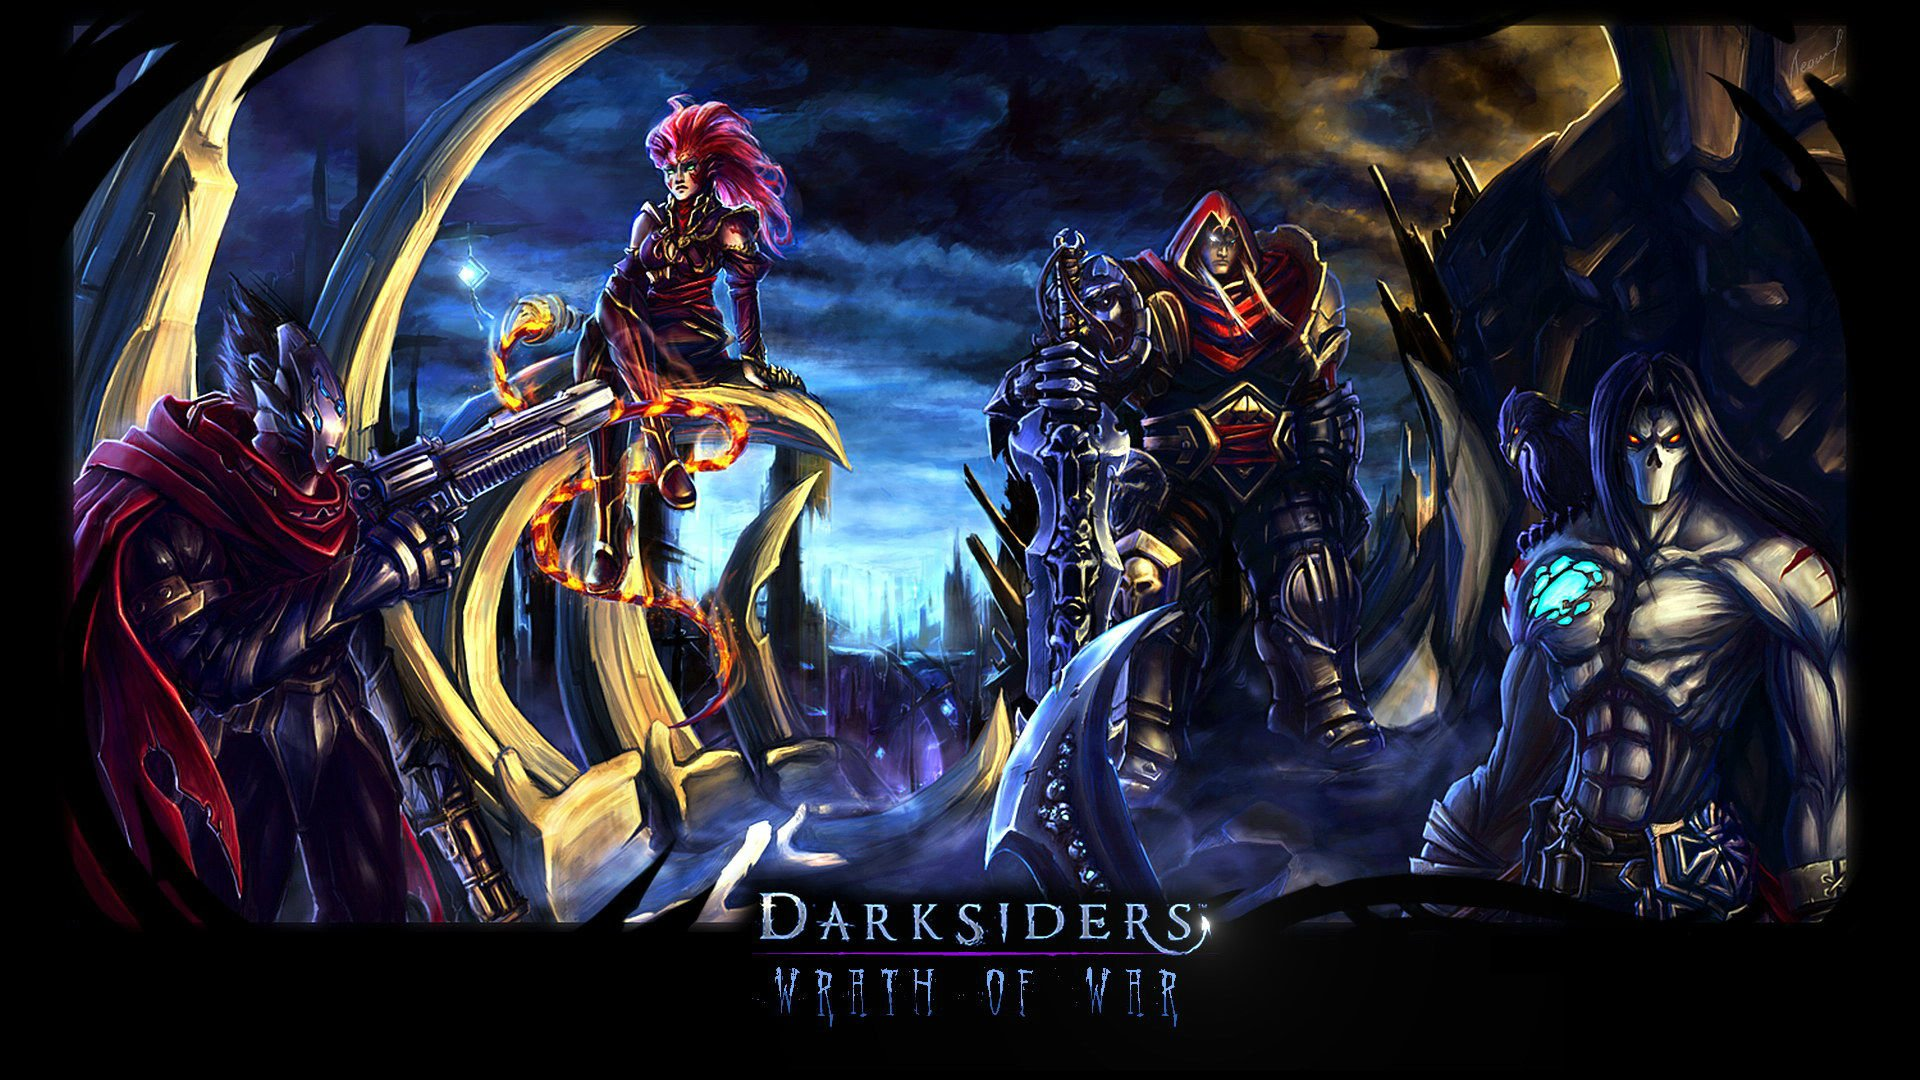 Darksiders War Wallpaper By: Darksiders Full HD Wallpaper And Background Image